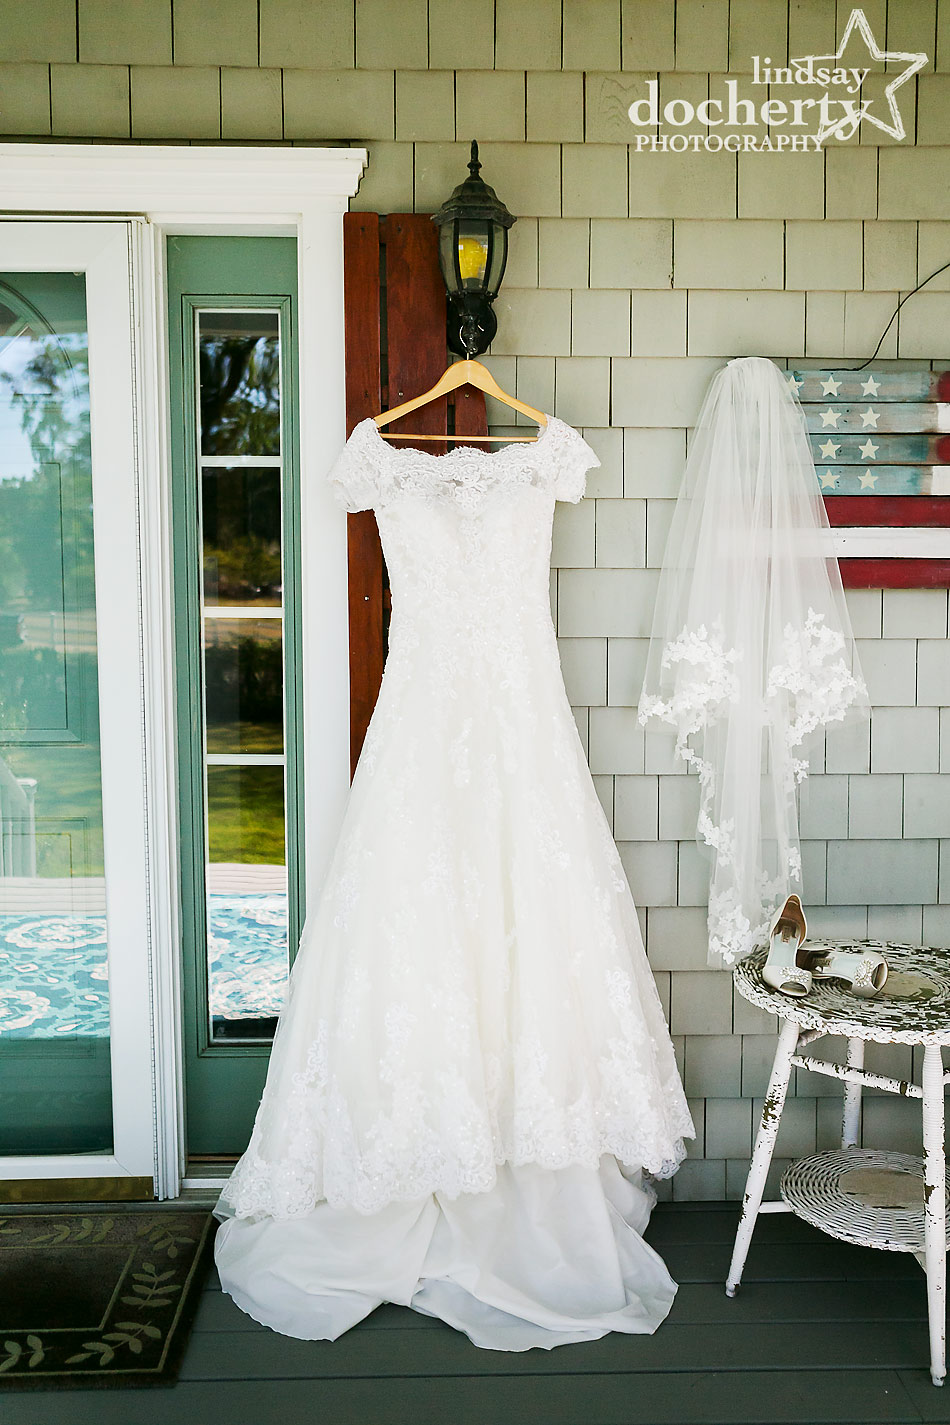 Provonias dress and veil for destination wedding on Shelter Island, New York